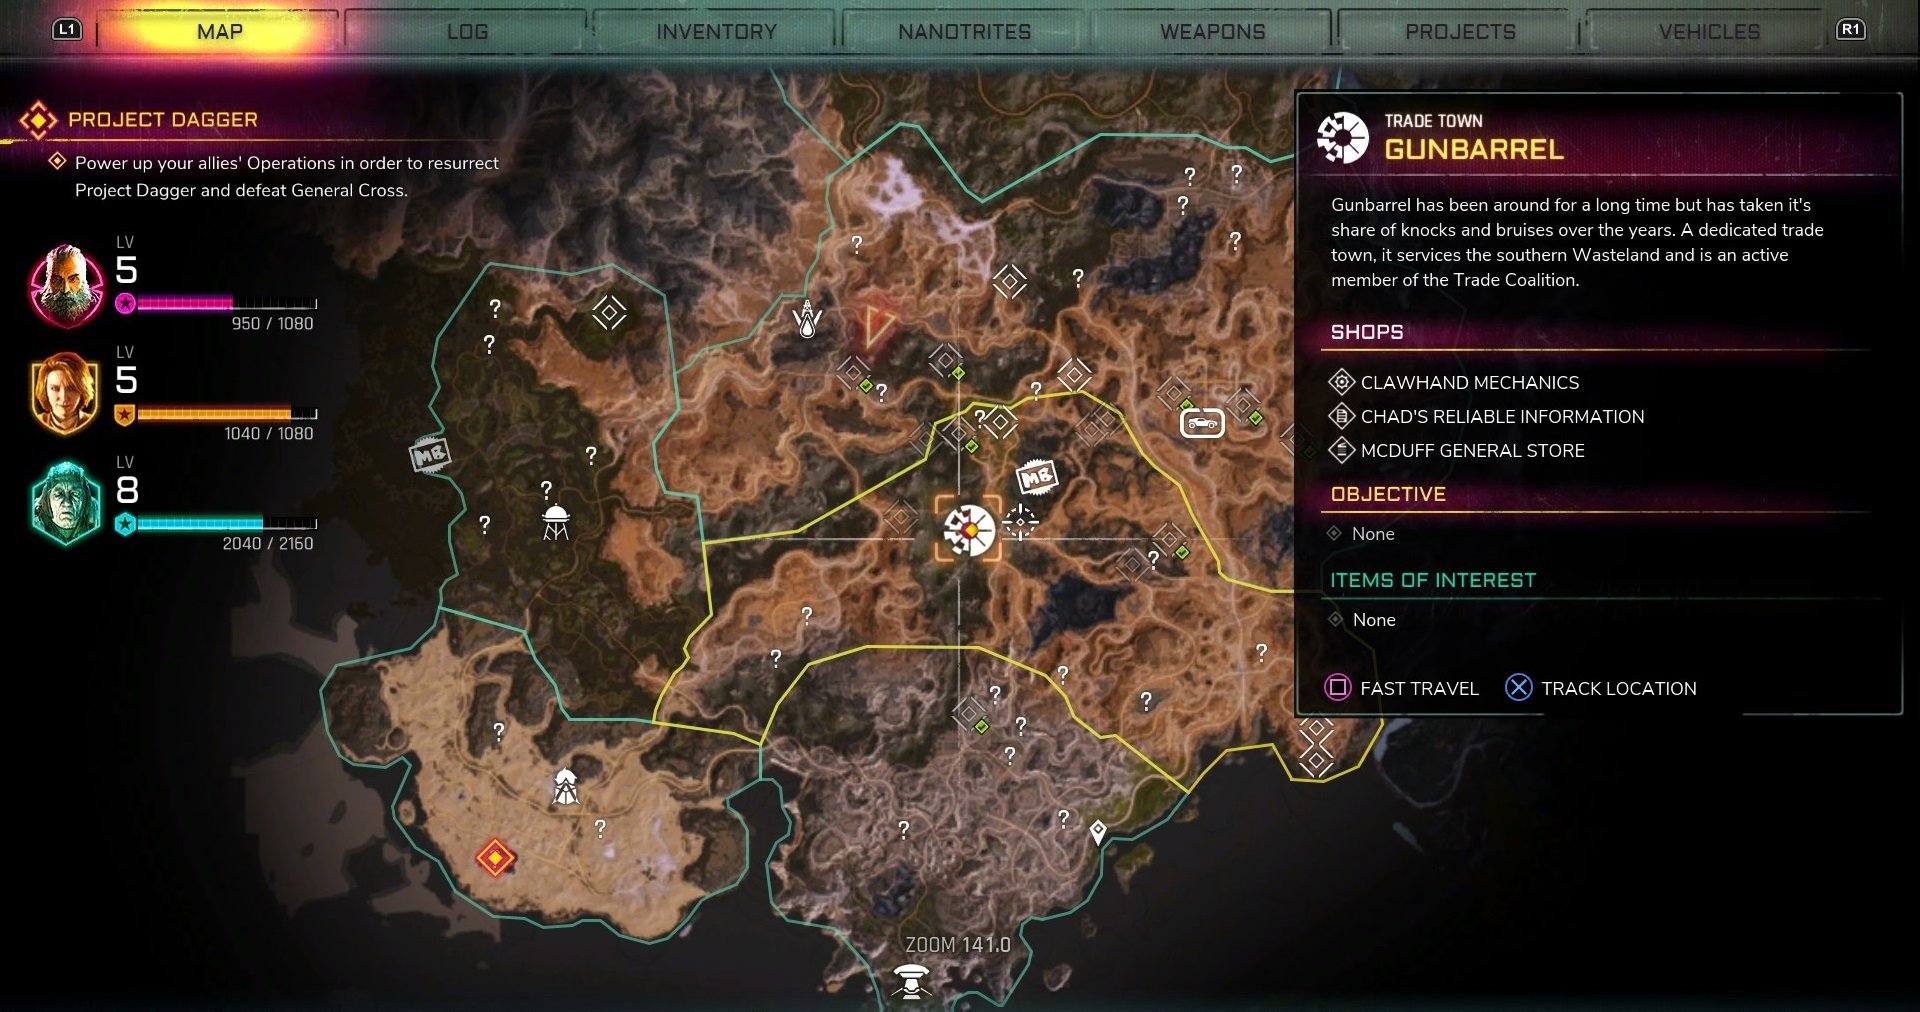 Gunbarrel is located in the Torn Plains region of Rage 2 and has three shops to buy items from.